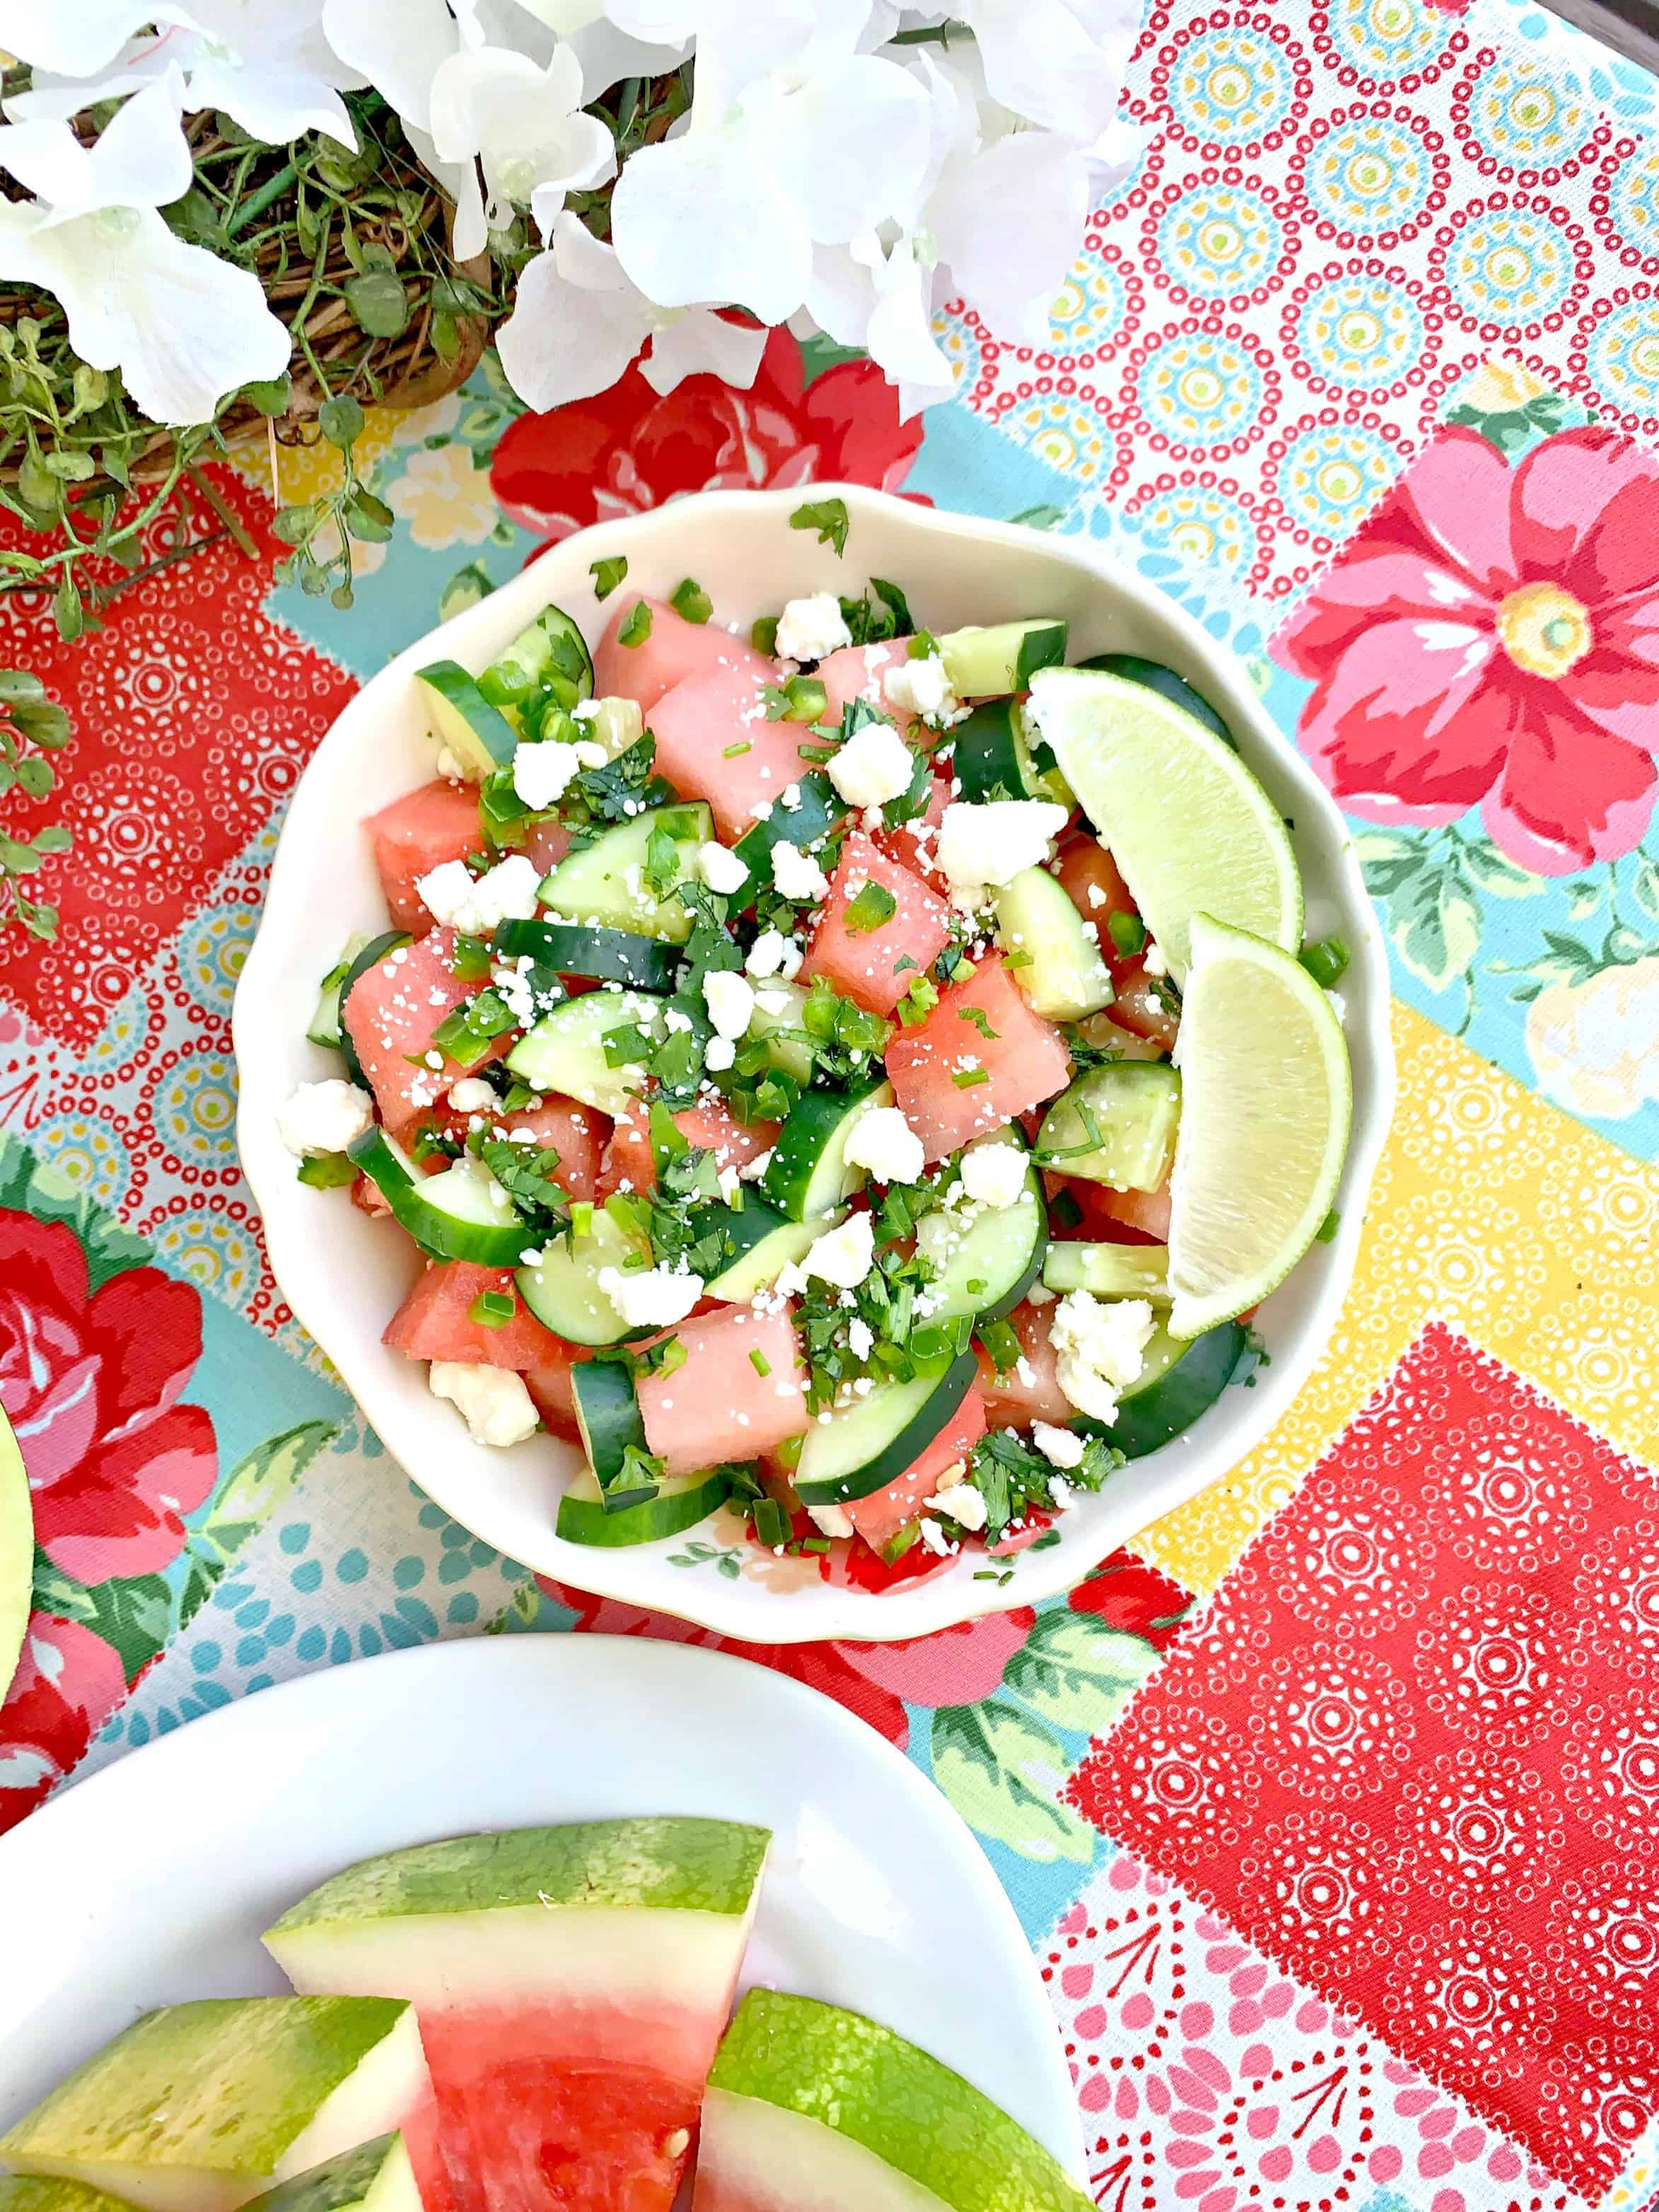 Our First Cookout + Watermelon Jalapeno Feta Salad